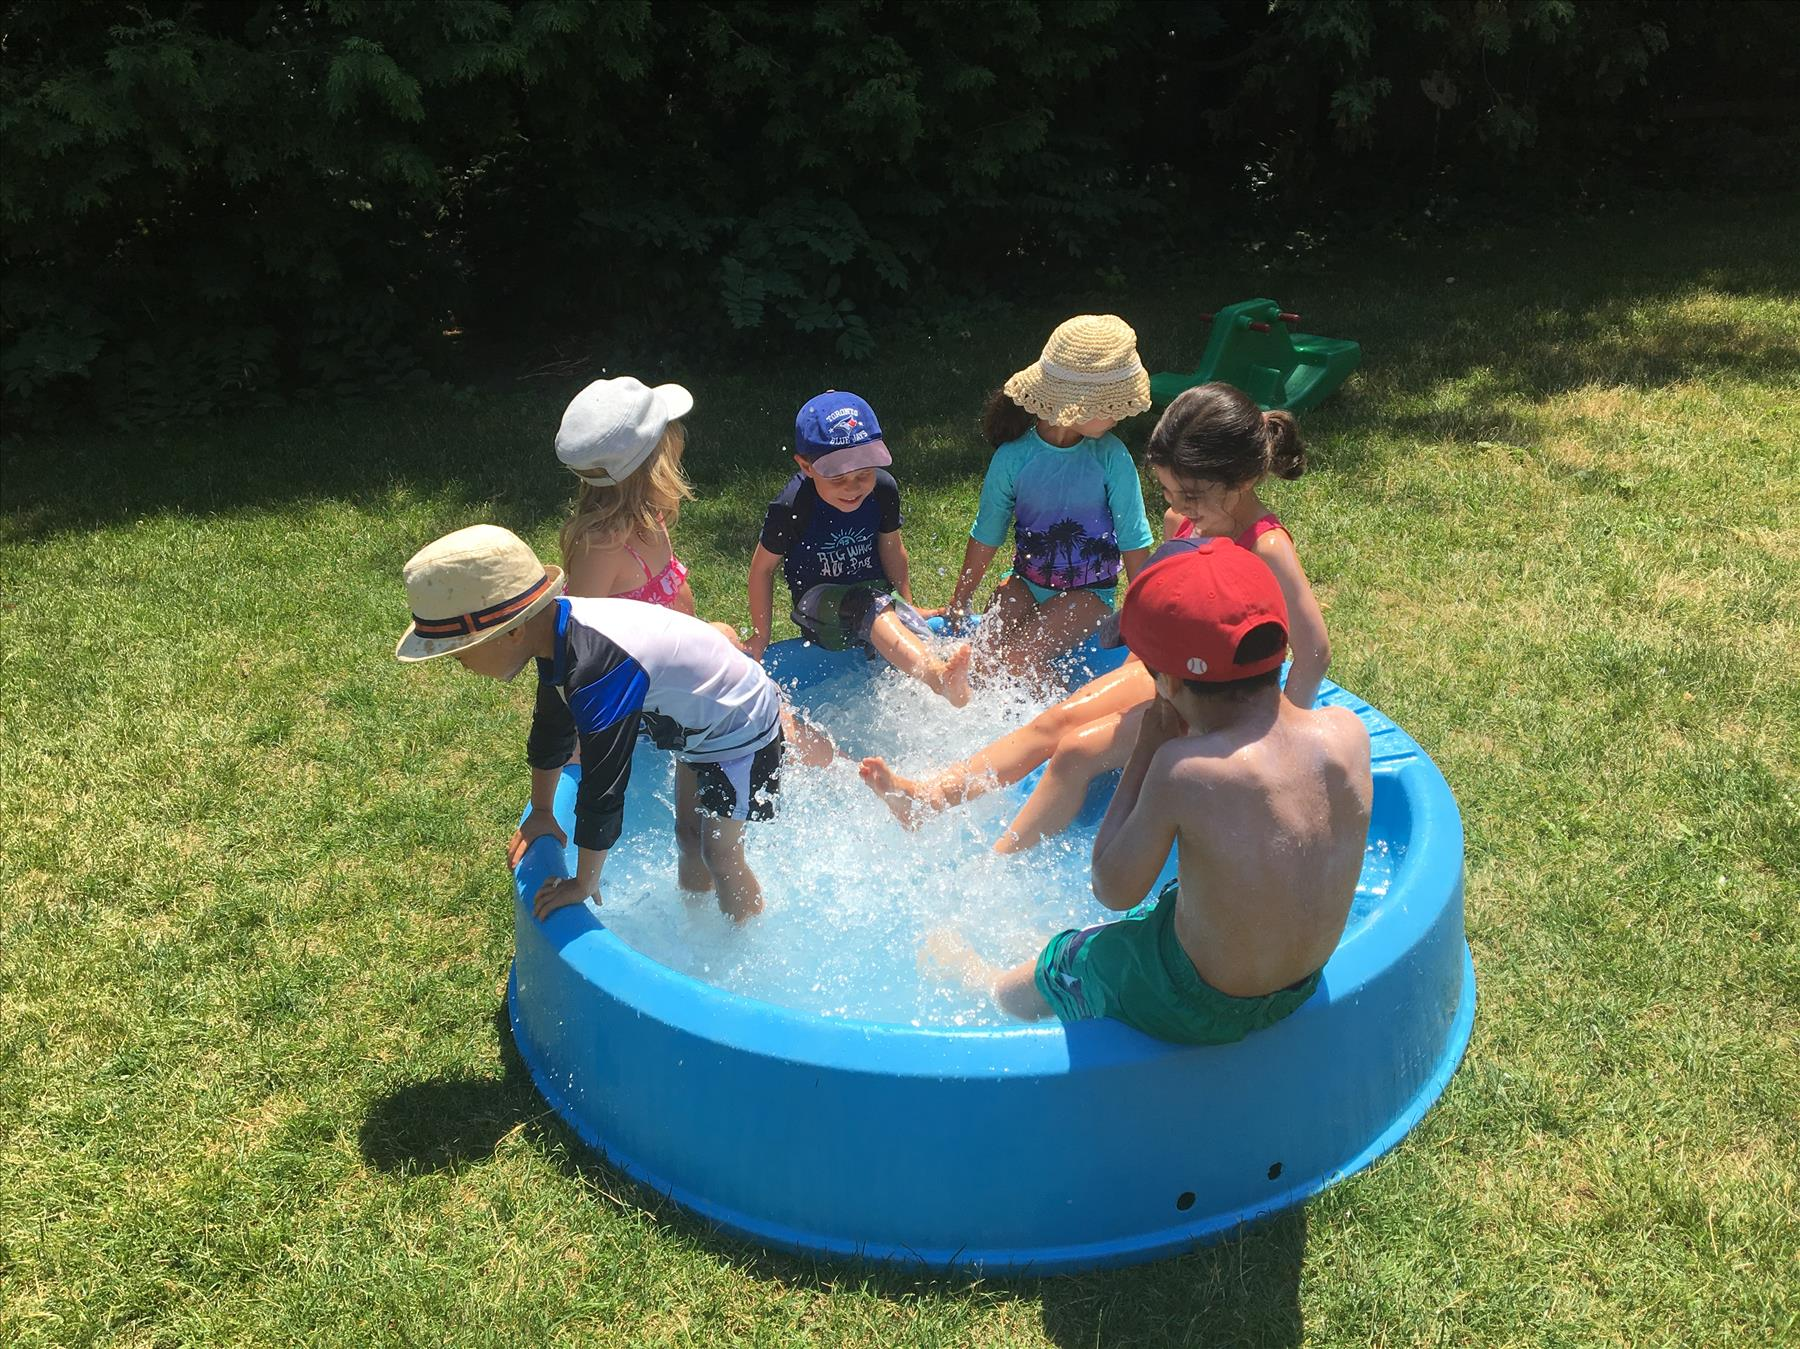 SUMMER CAMP FOR TODDLERS AND PRESCHOOLERS IN RICHMOND HILL